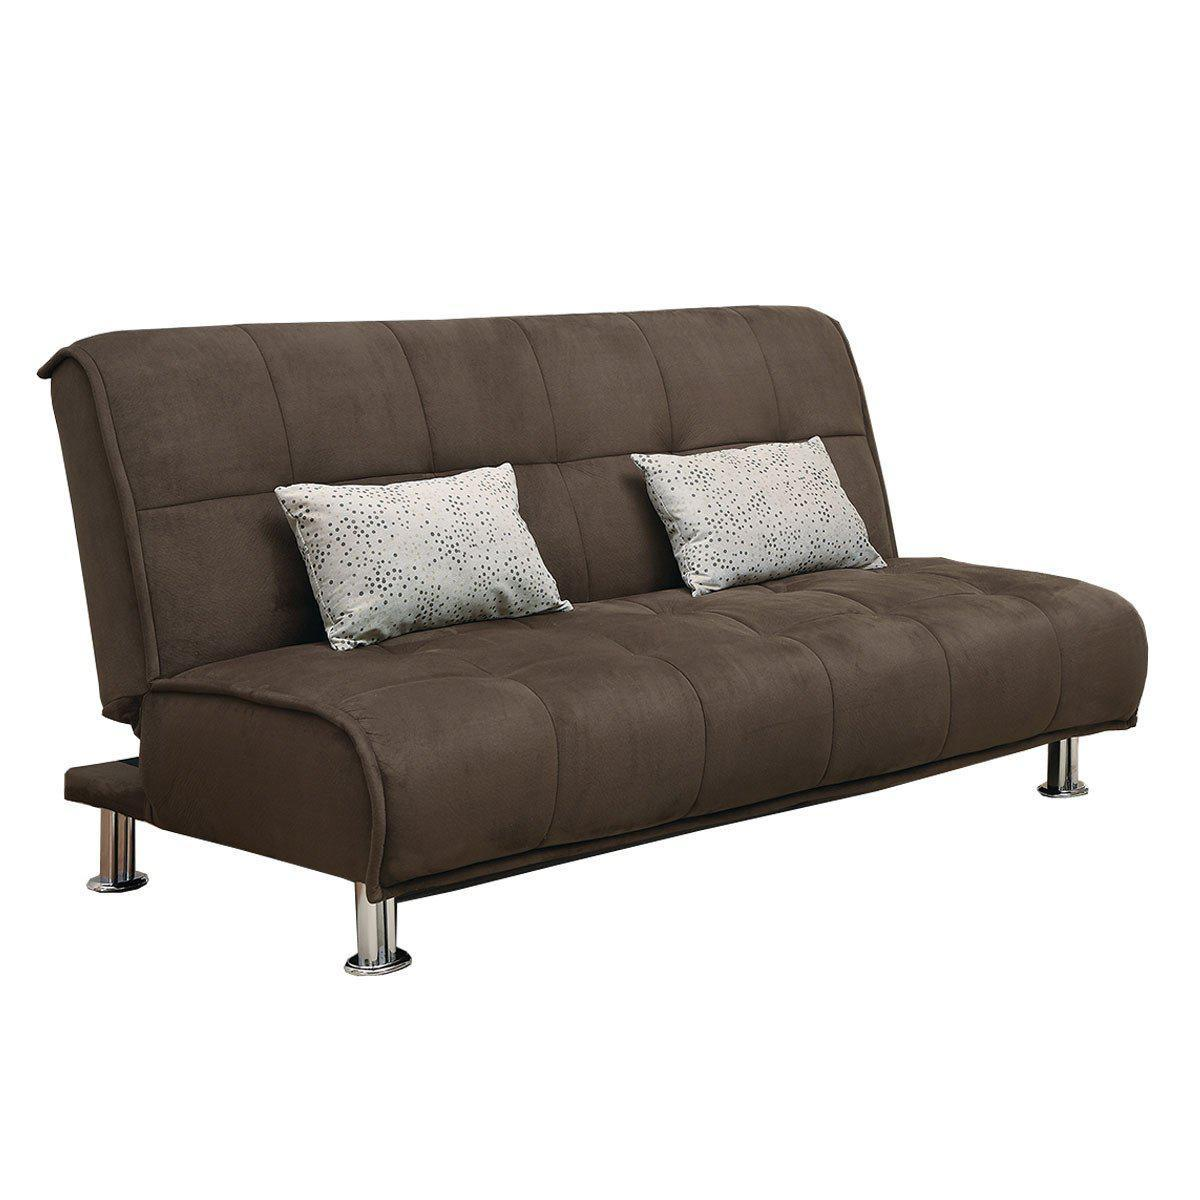 Ellwood Futon Sofa-sofas-Jennifer Furniture